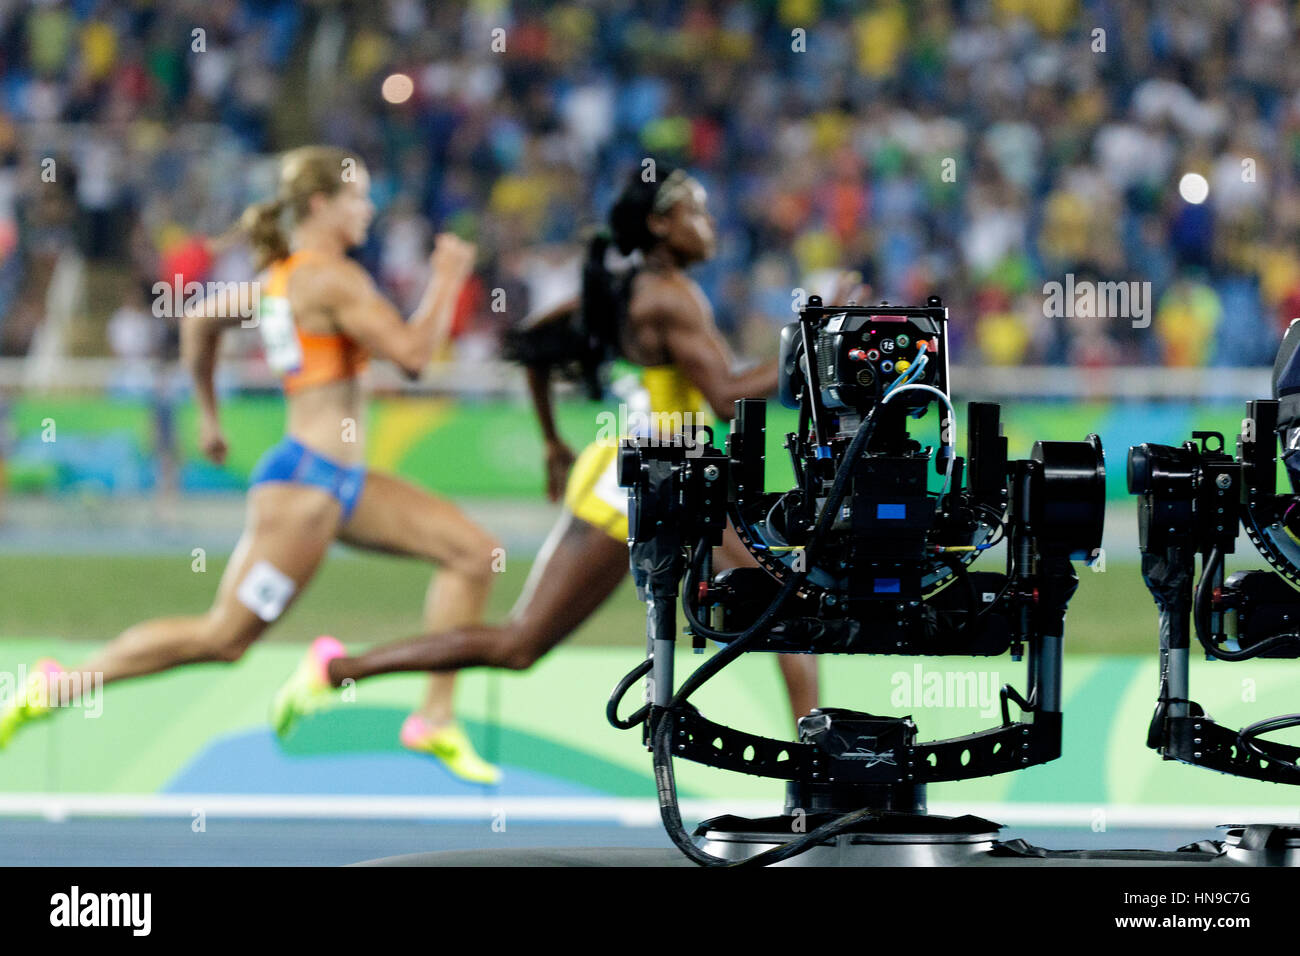 Rio de Janeiro, Brazil. 17 August 2016.  Athletics, TV cameras track the Women's 200m finals at the 2016 Olympic - Stock Image